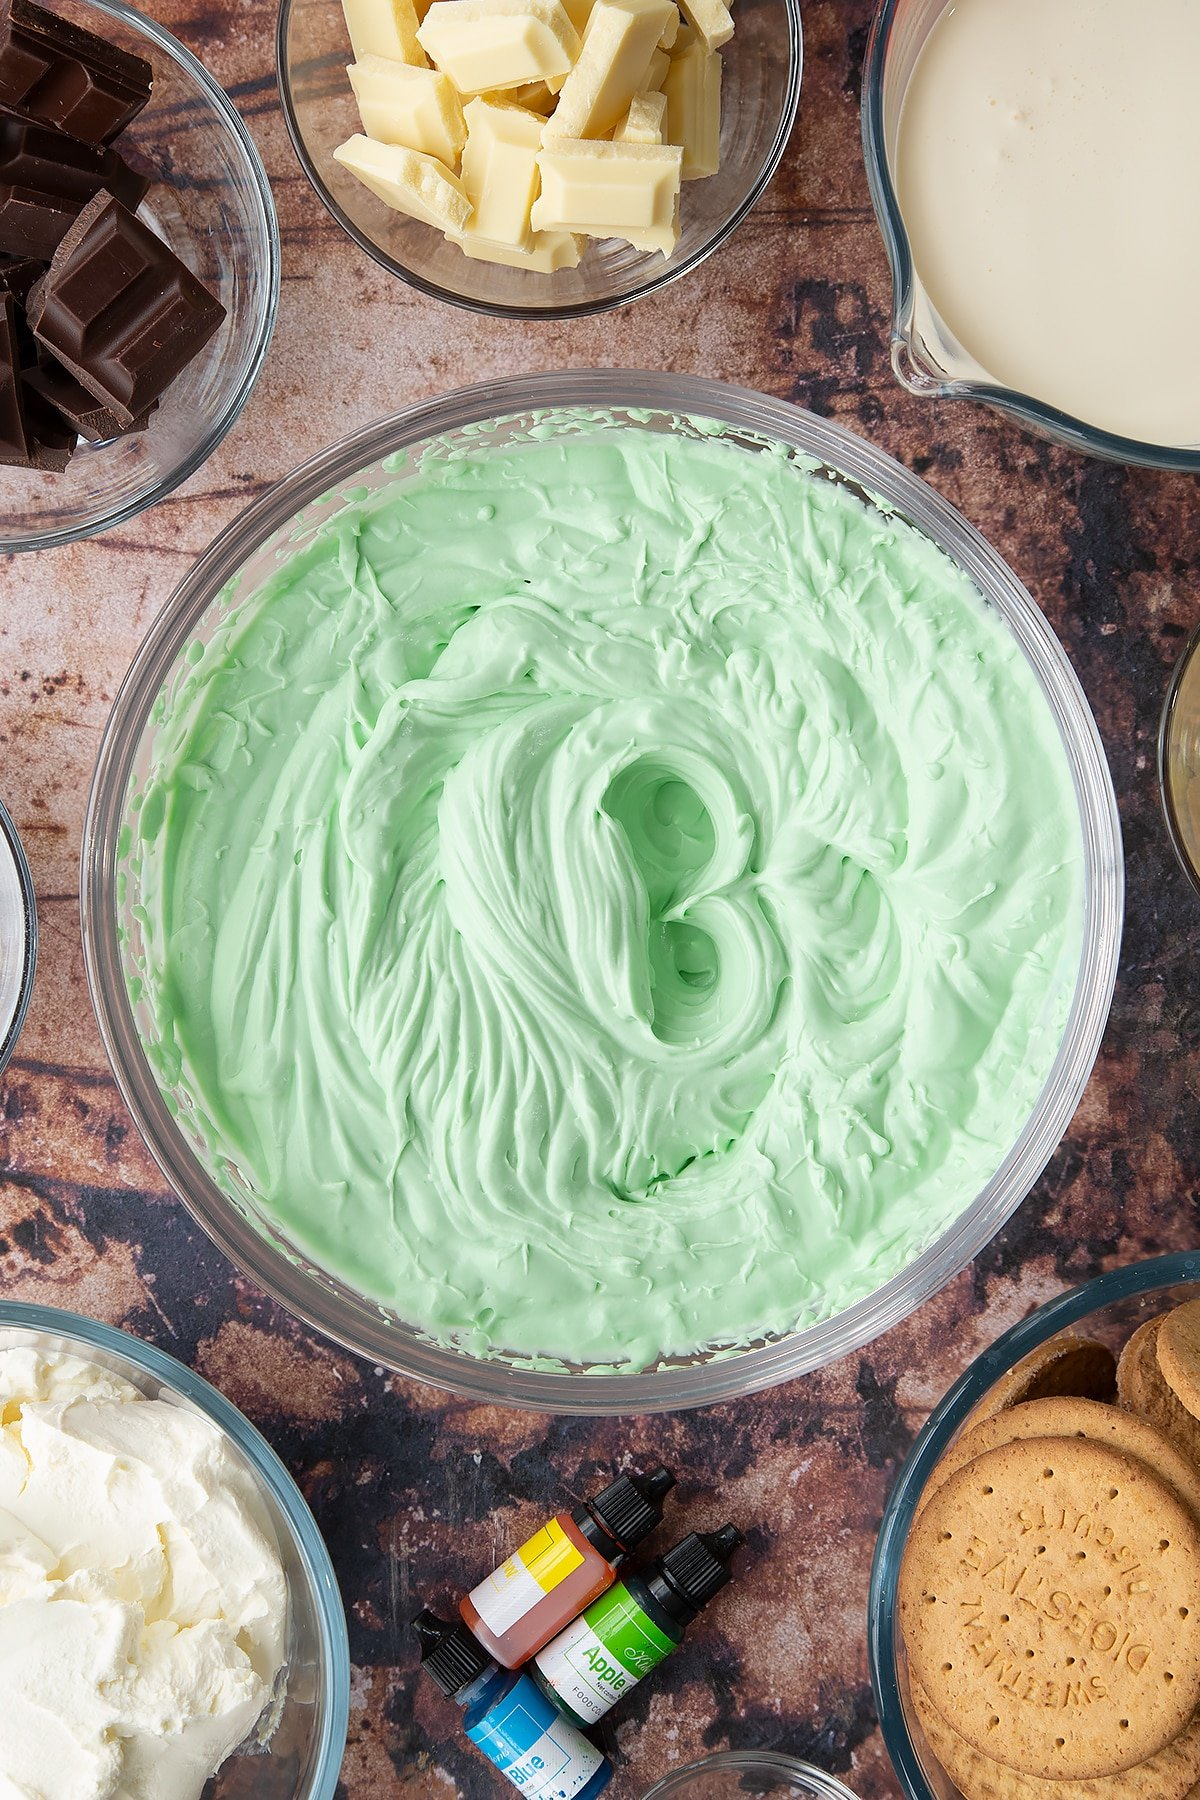 Peppermint green cheesecake filling in a glass bowl. Ingredients to make no bake mint cheesecake surround the bowl.